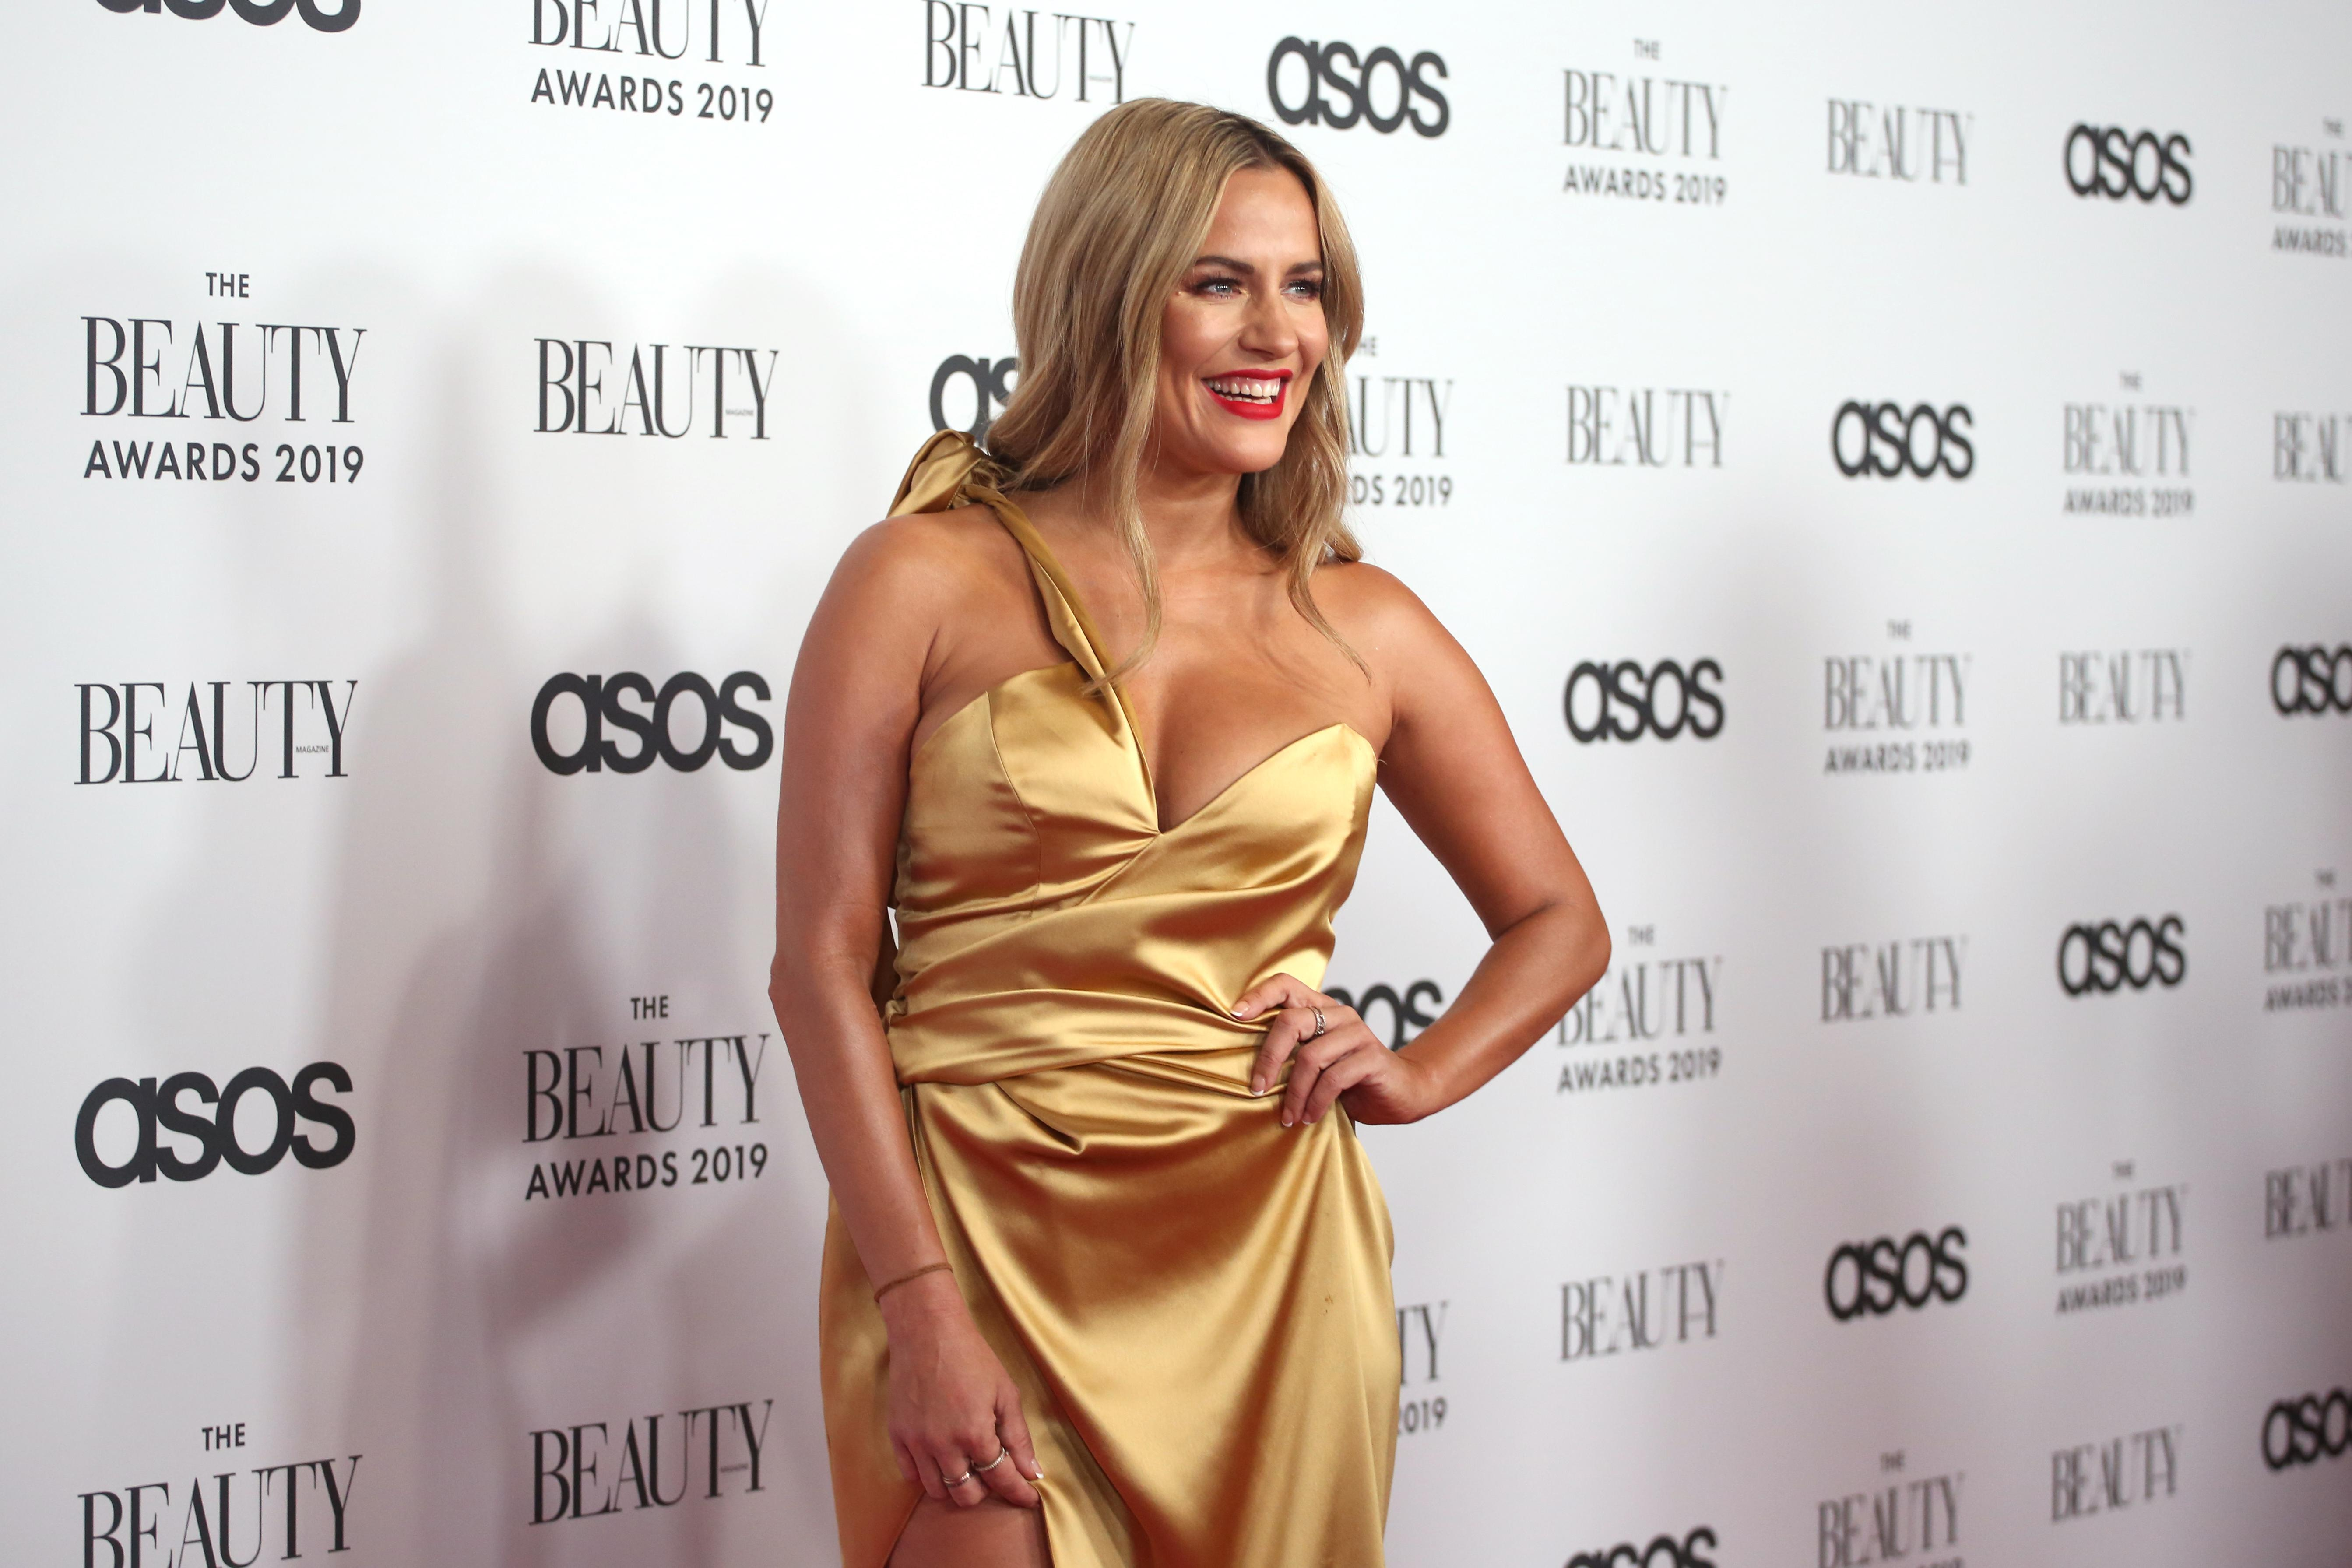 Caroline Flack was being harassed in build up to incident which led to arrest